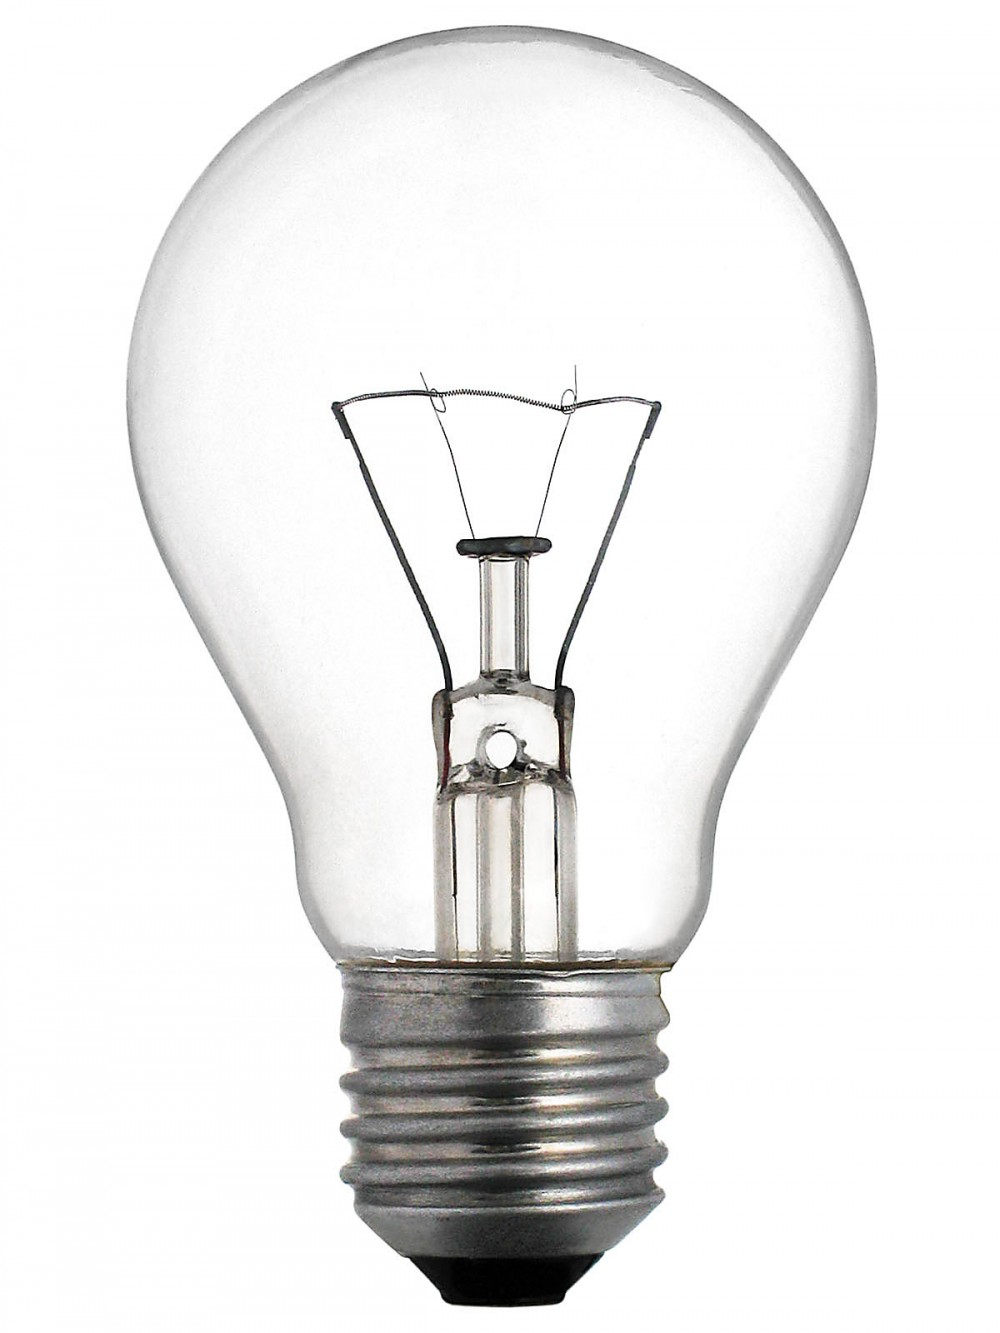 The return of the incandescent lamp? - EE Publishers